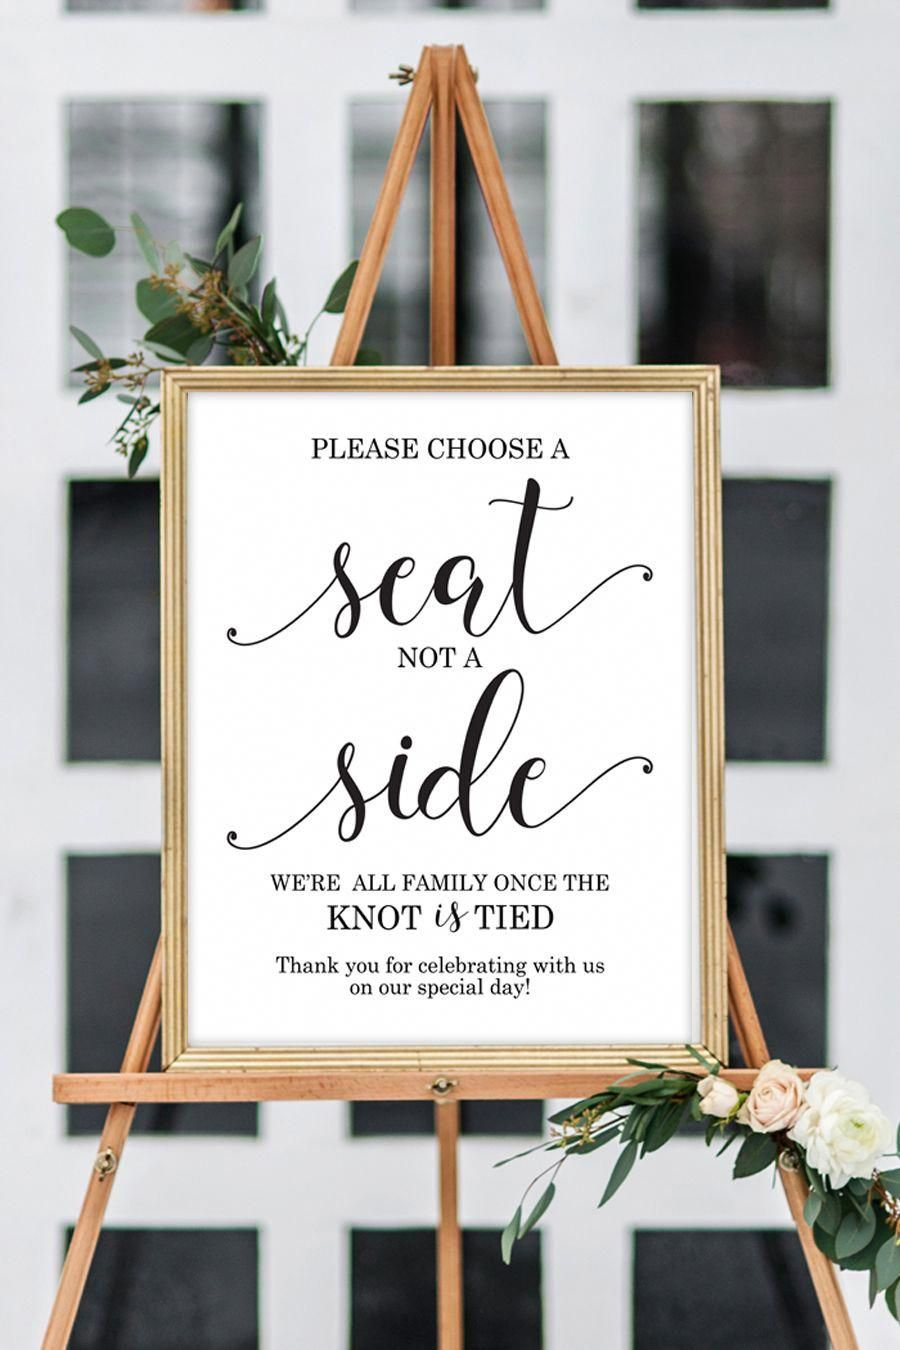 Choose a seat not a side we're all family once the knot is